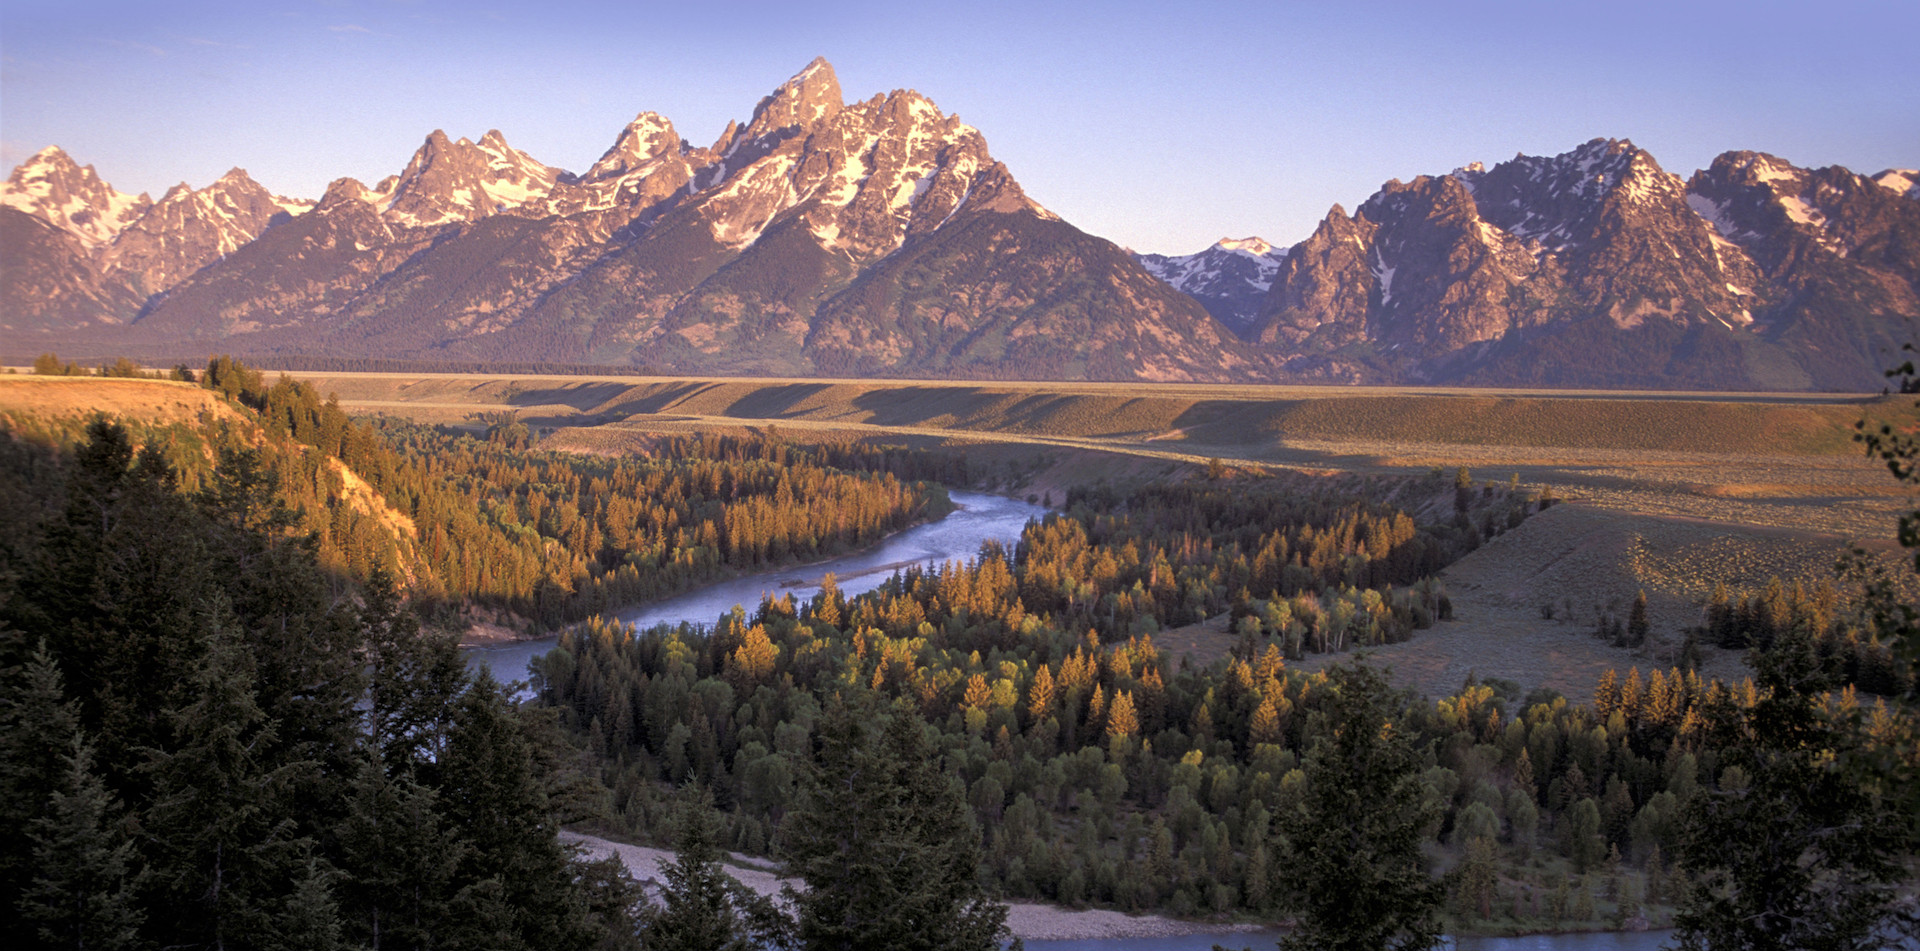 North America USA U.S. National Park Wyoming Grand Teton National Park Landscape Mountain River Forest